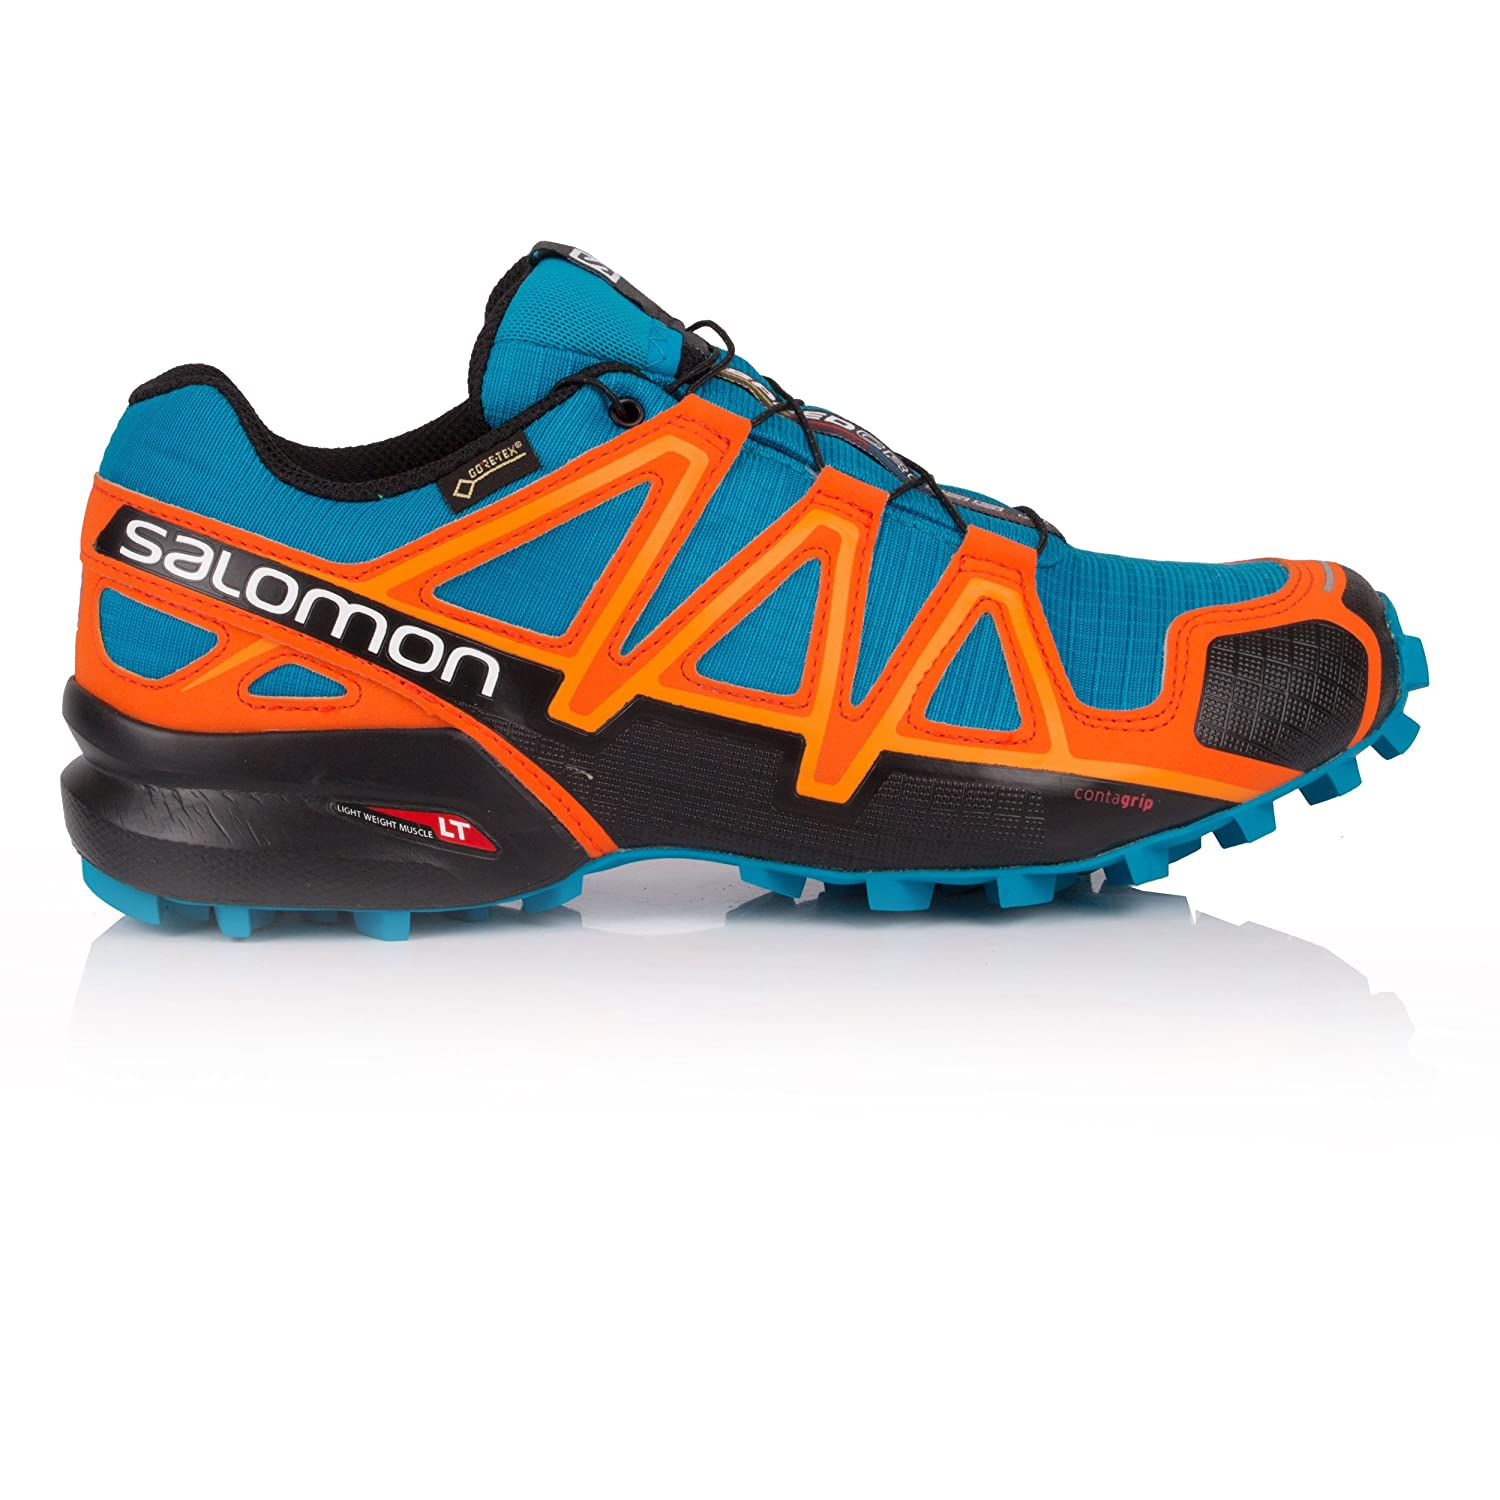 [サロモン] トレイルランニングシューズ SPEEDCROSS 4 GTX メンズ B077BGHHF4 9 D(M) US|Hawaiian Blue/ Black Hawaiian Blue/ Black 9 D(M) US